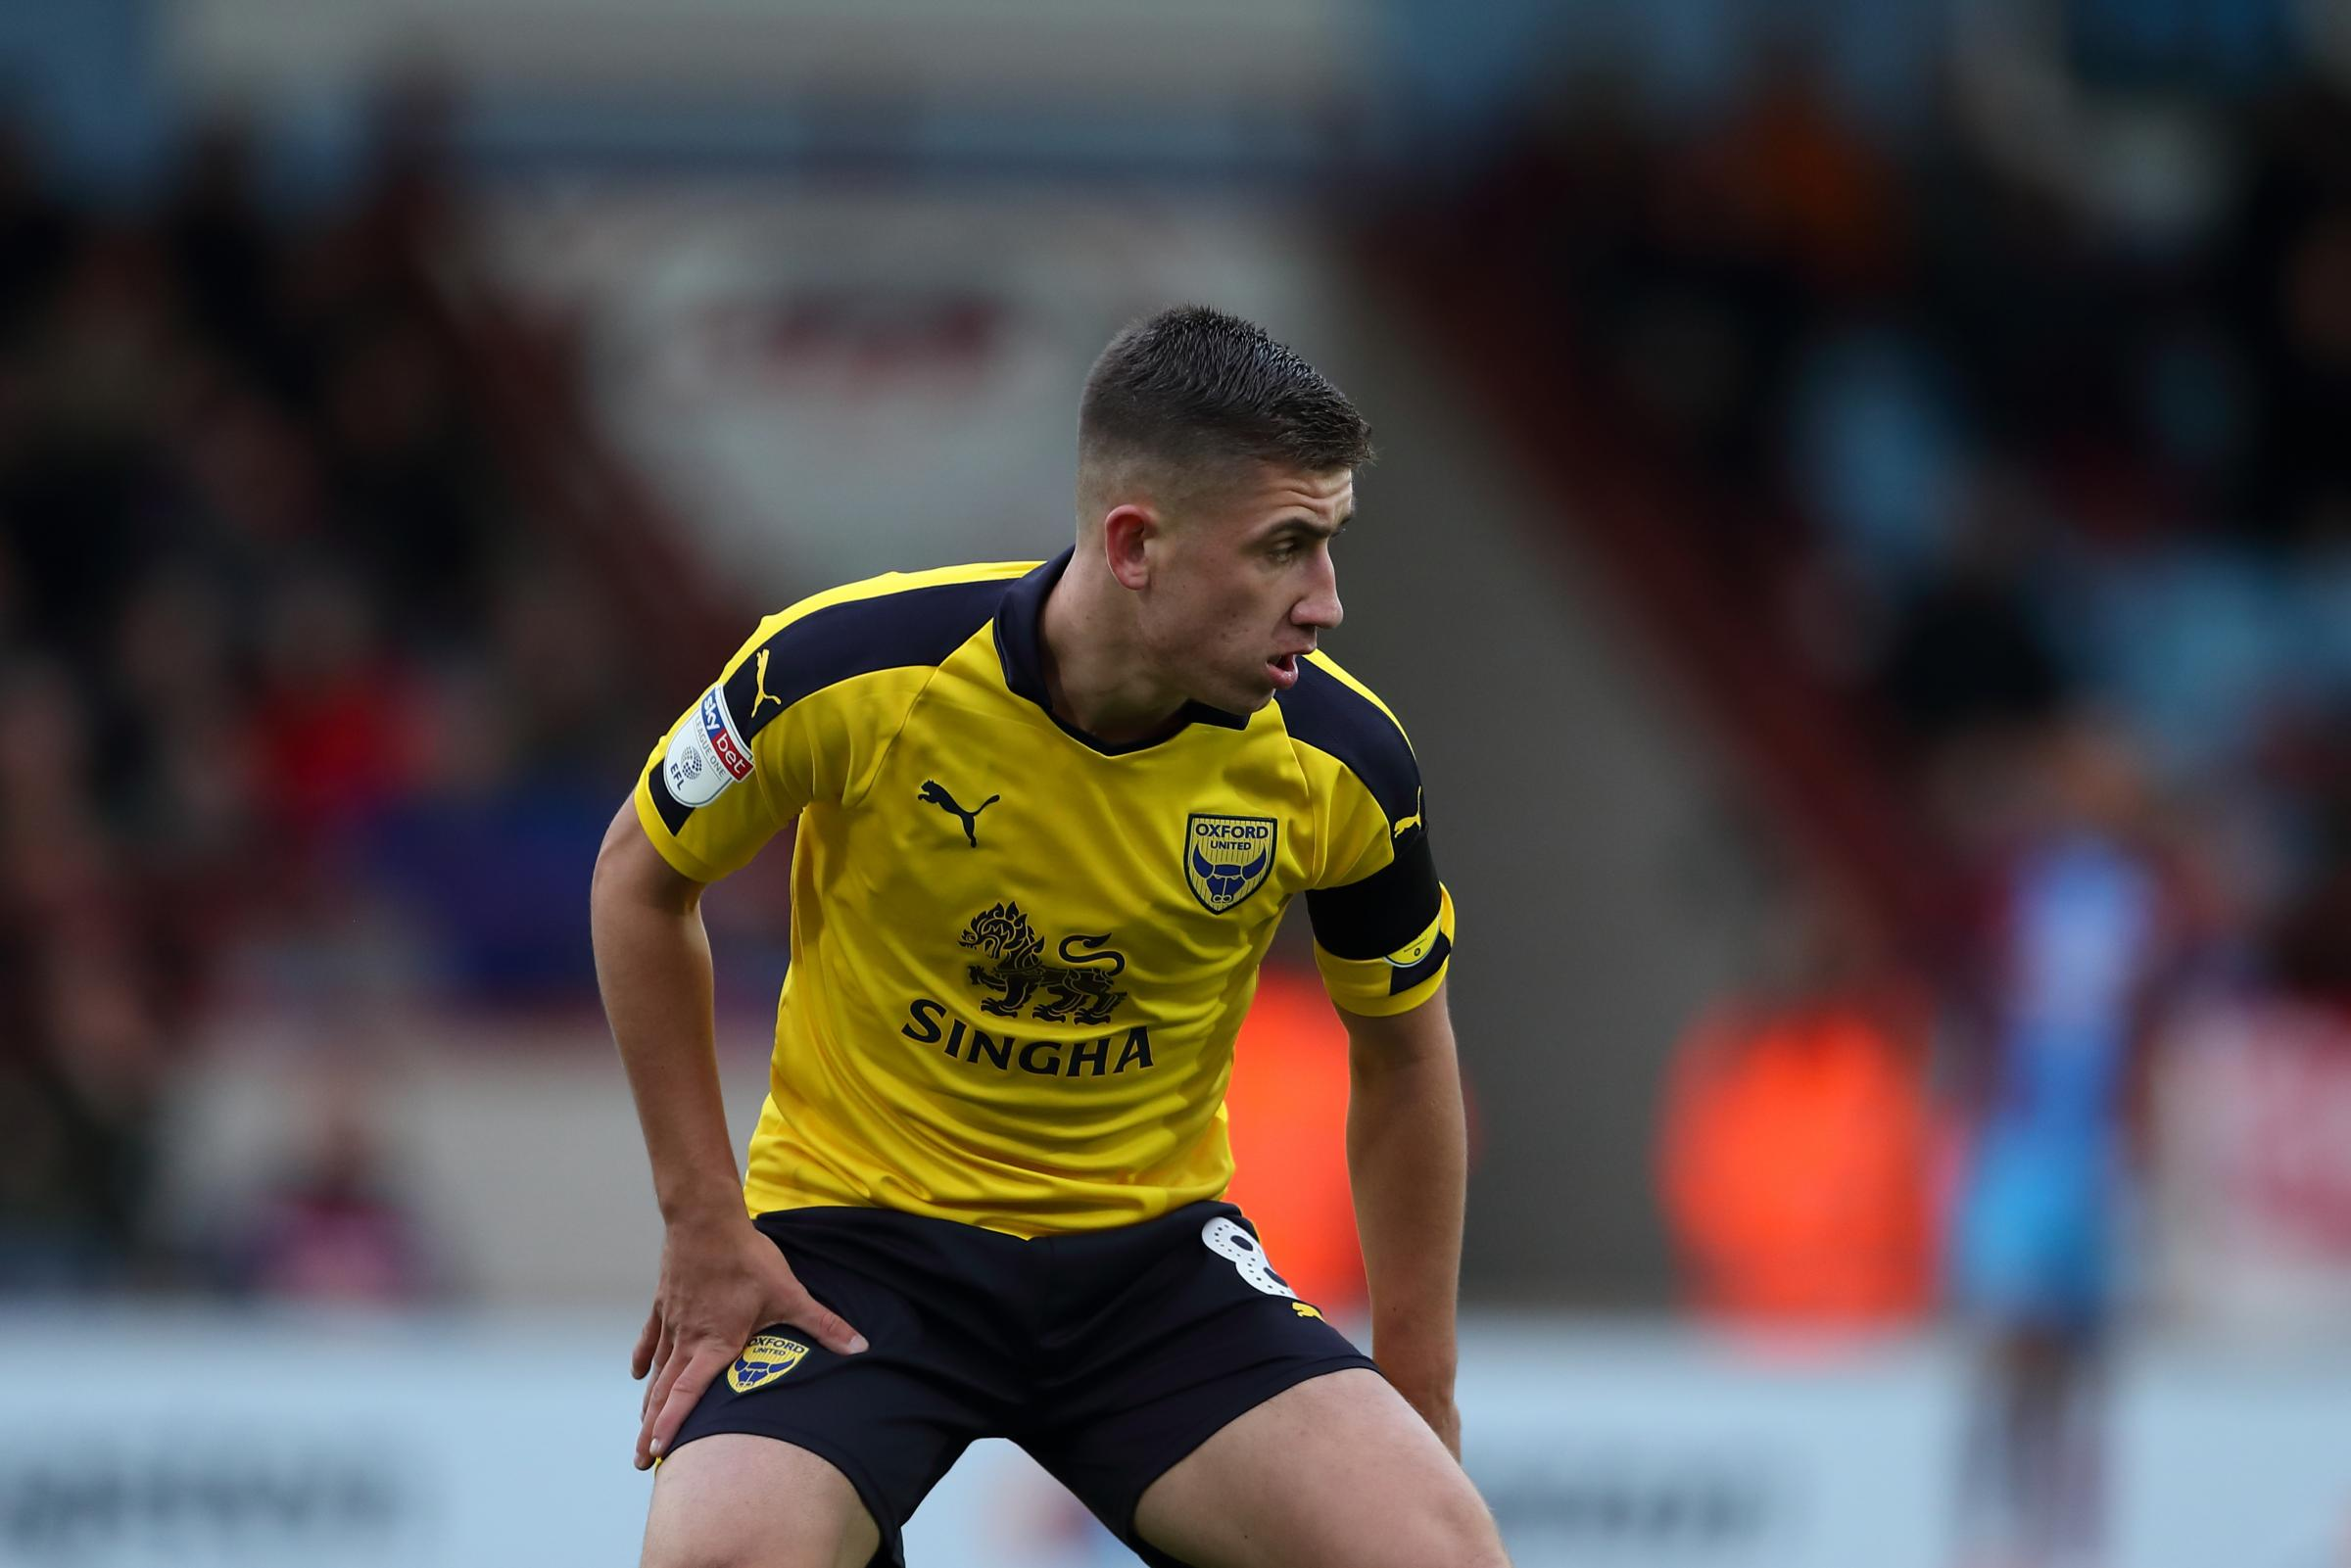 Cameron Brannagan admits it has been hard to watch Oxford United win their last two games while he was suspendedPicture: James Williamson